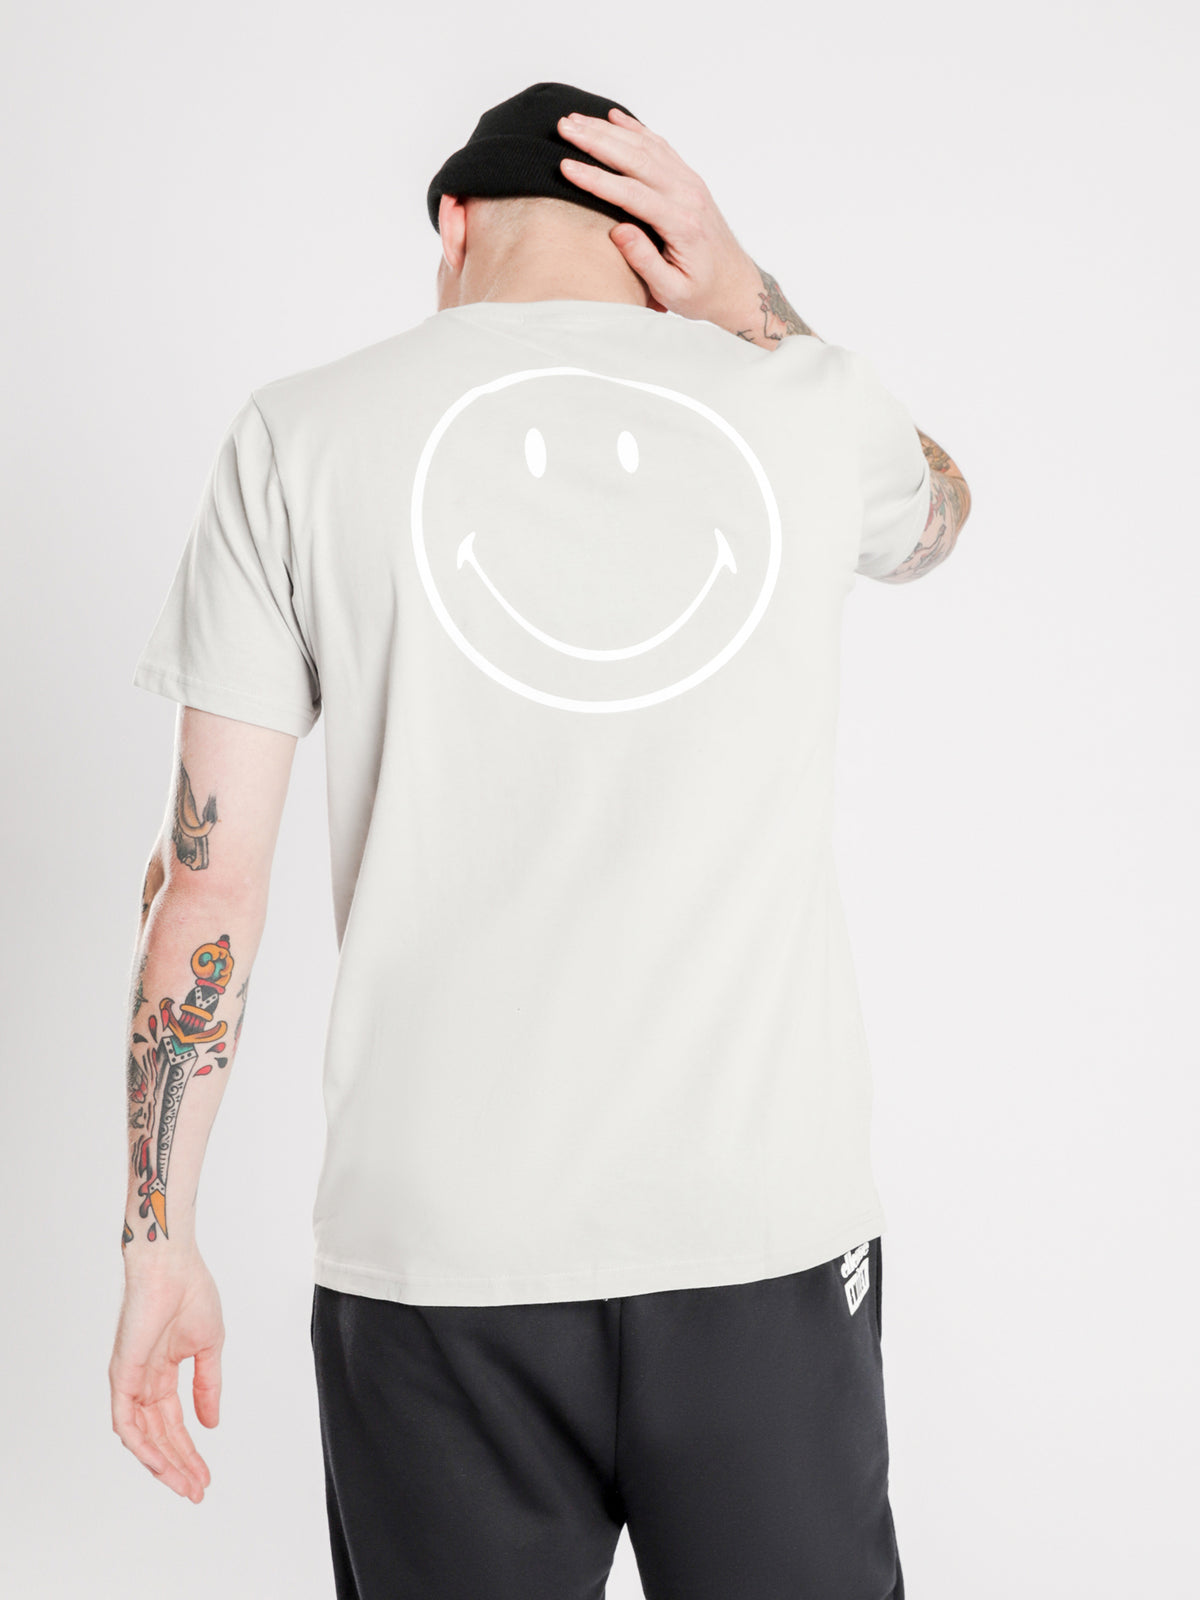 SMILEY Rapallo T-Shirt in Grey